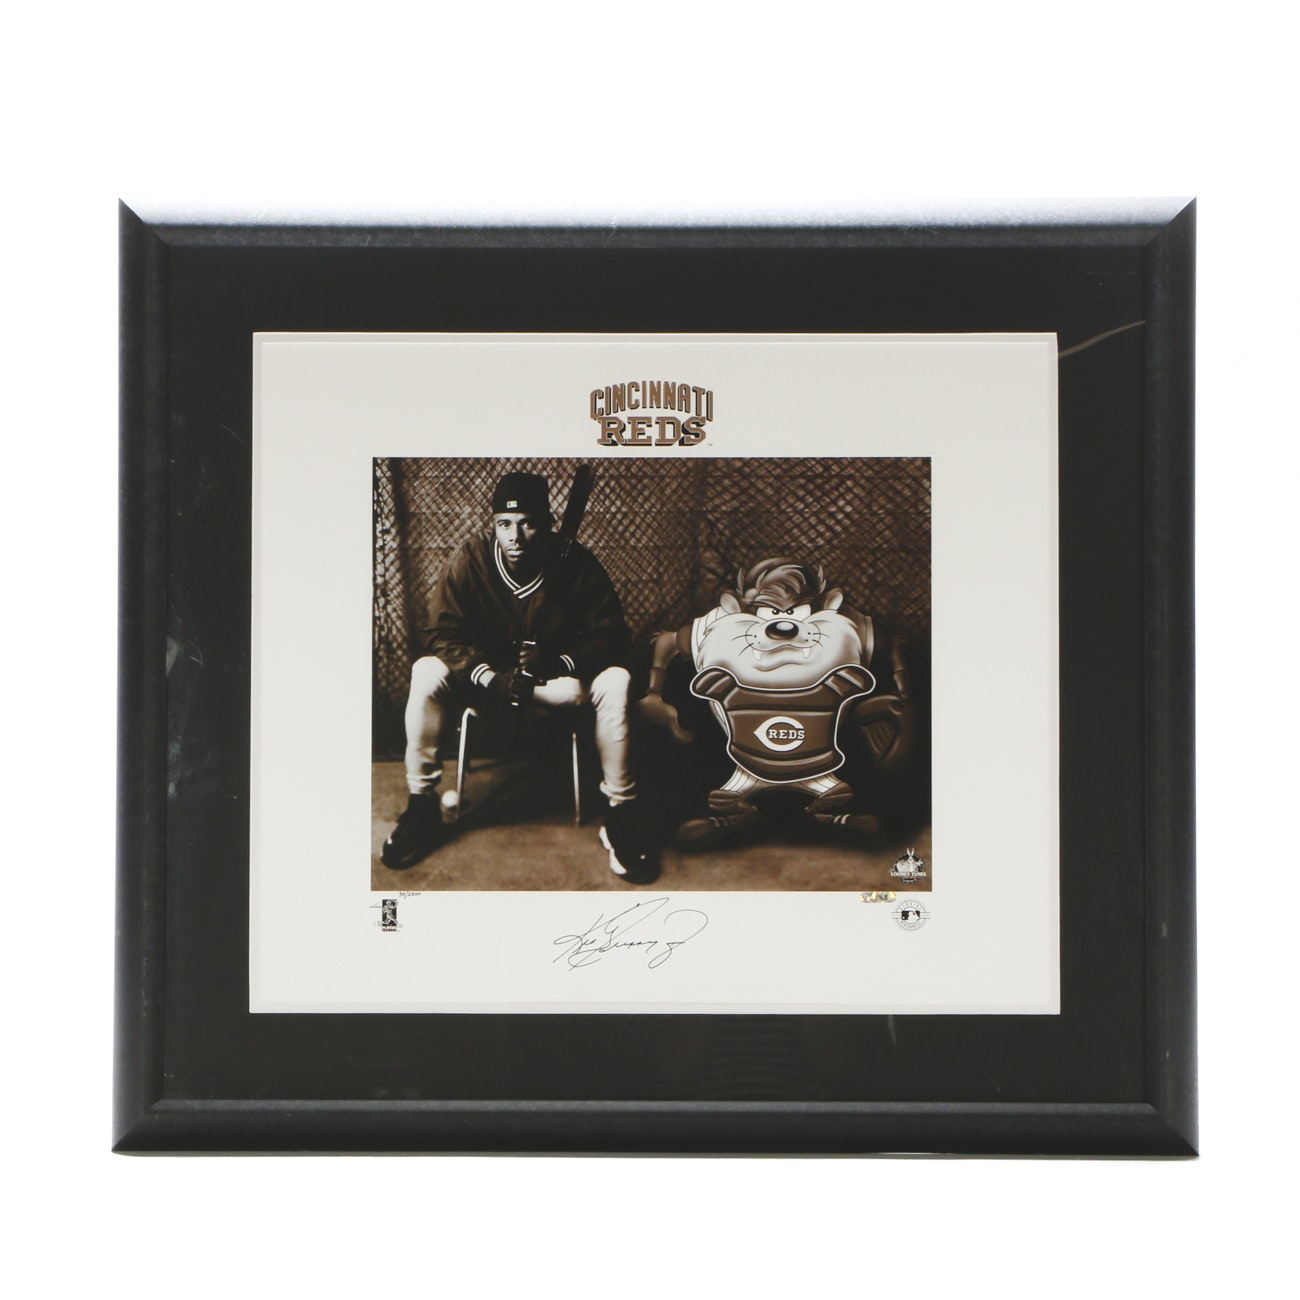 Ken Griffey Jr. Signed Reds Looney Tunes Item  COA